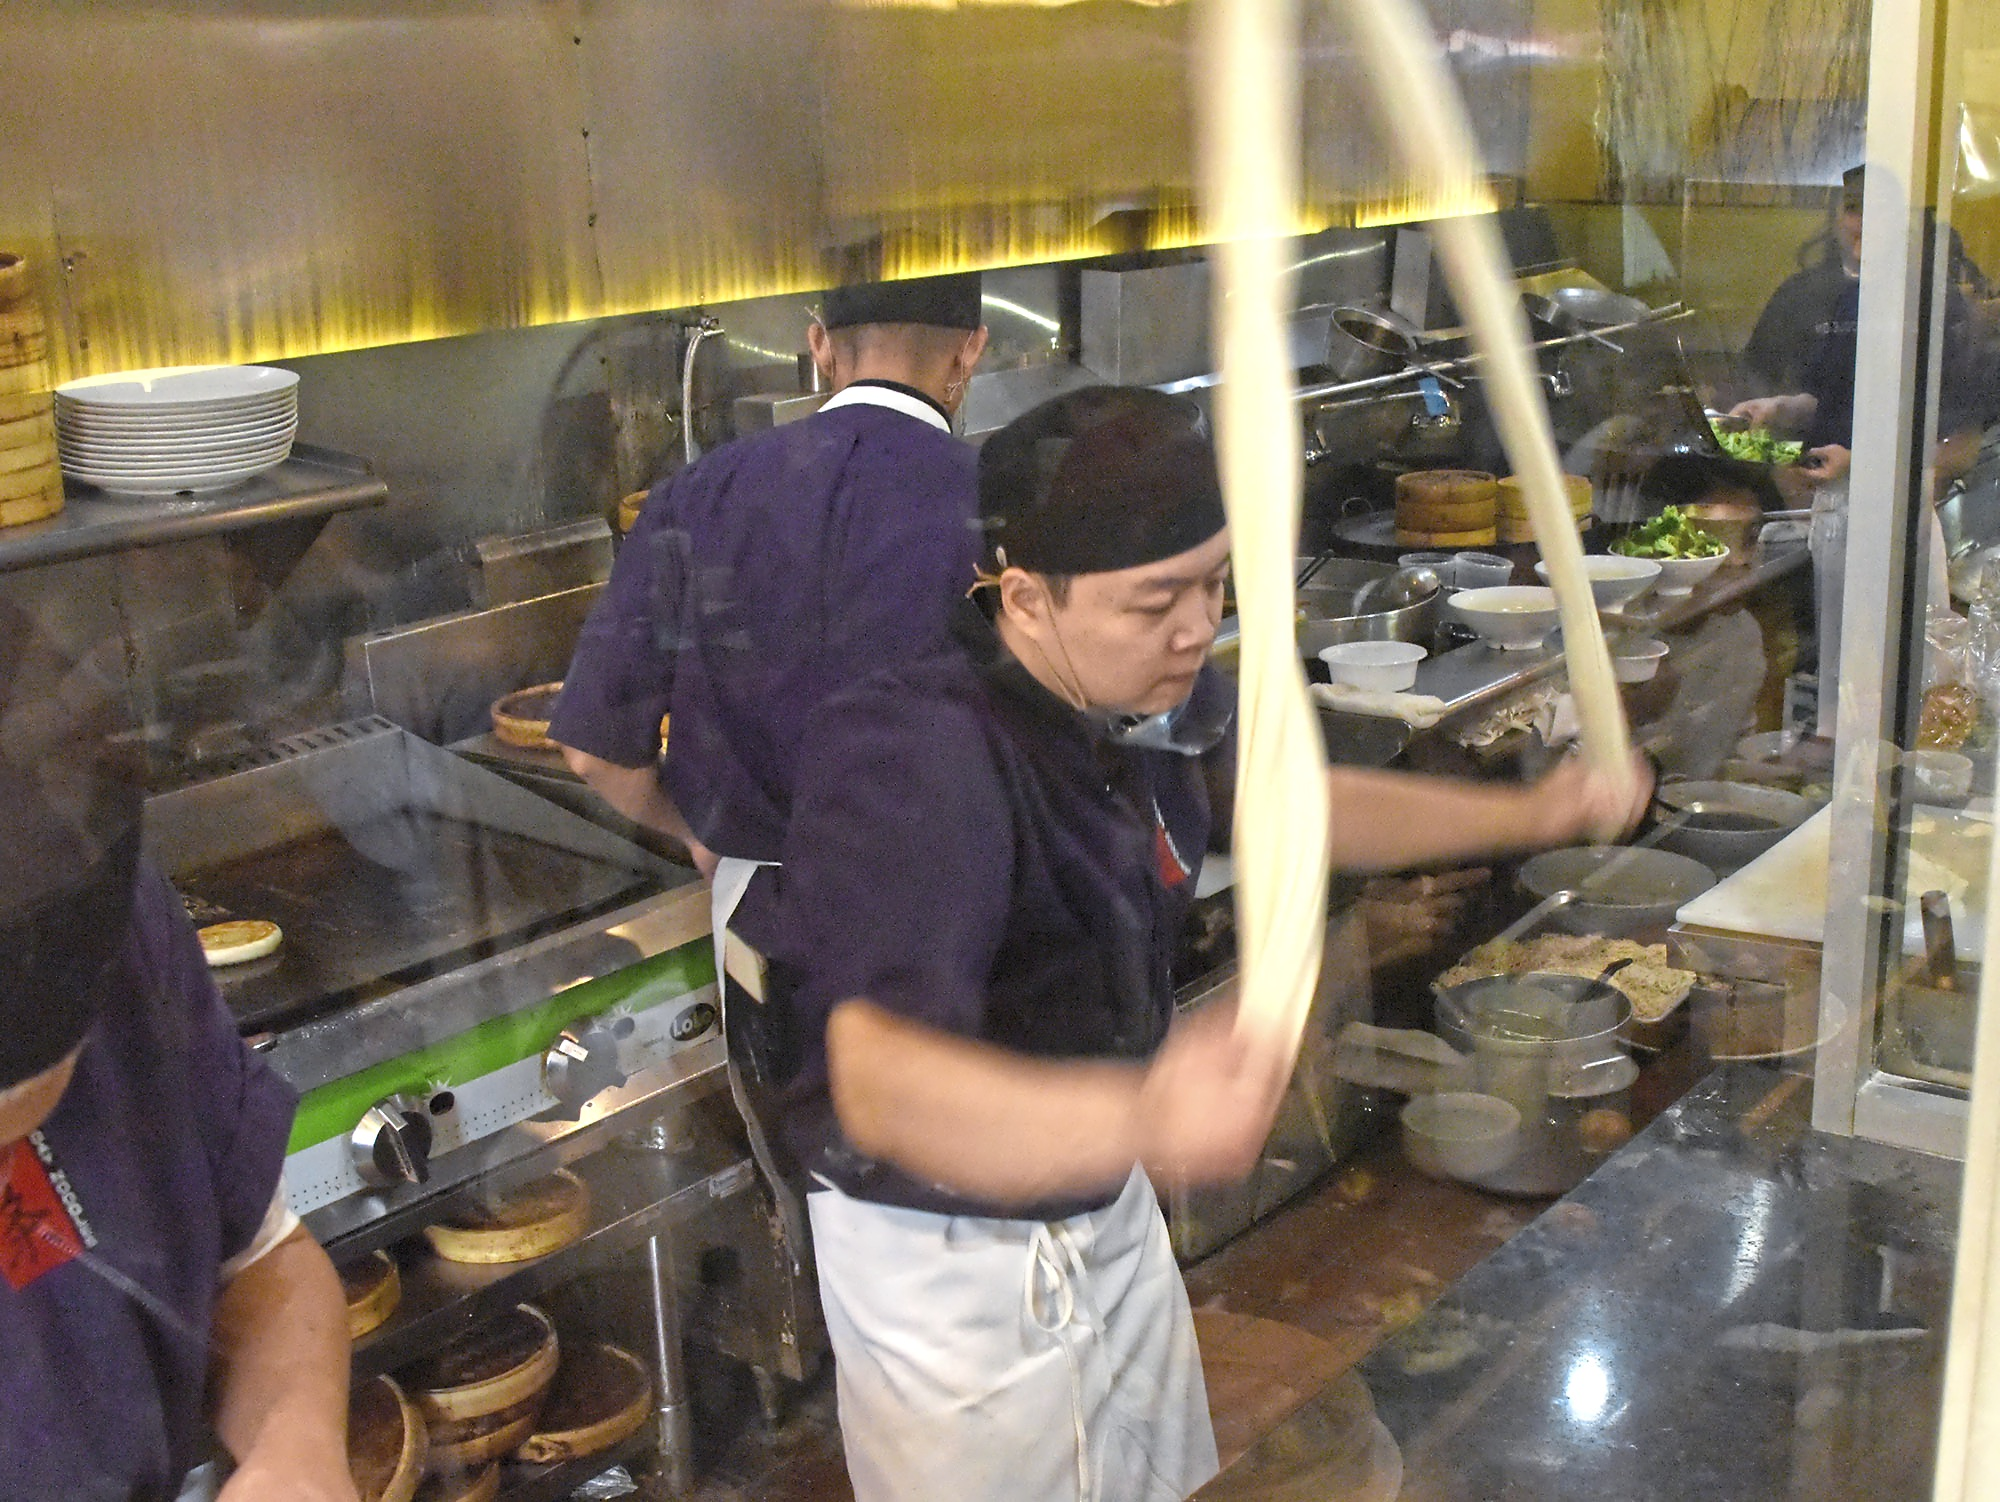 20171123dsEverydayDoodlesFood01 Jung Liu stretches and slams a long strand of dough to make noodles at Everyday Noodles in Squirrel Hill.